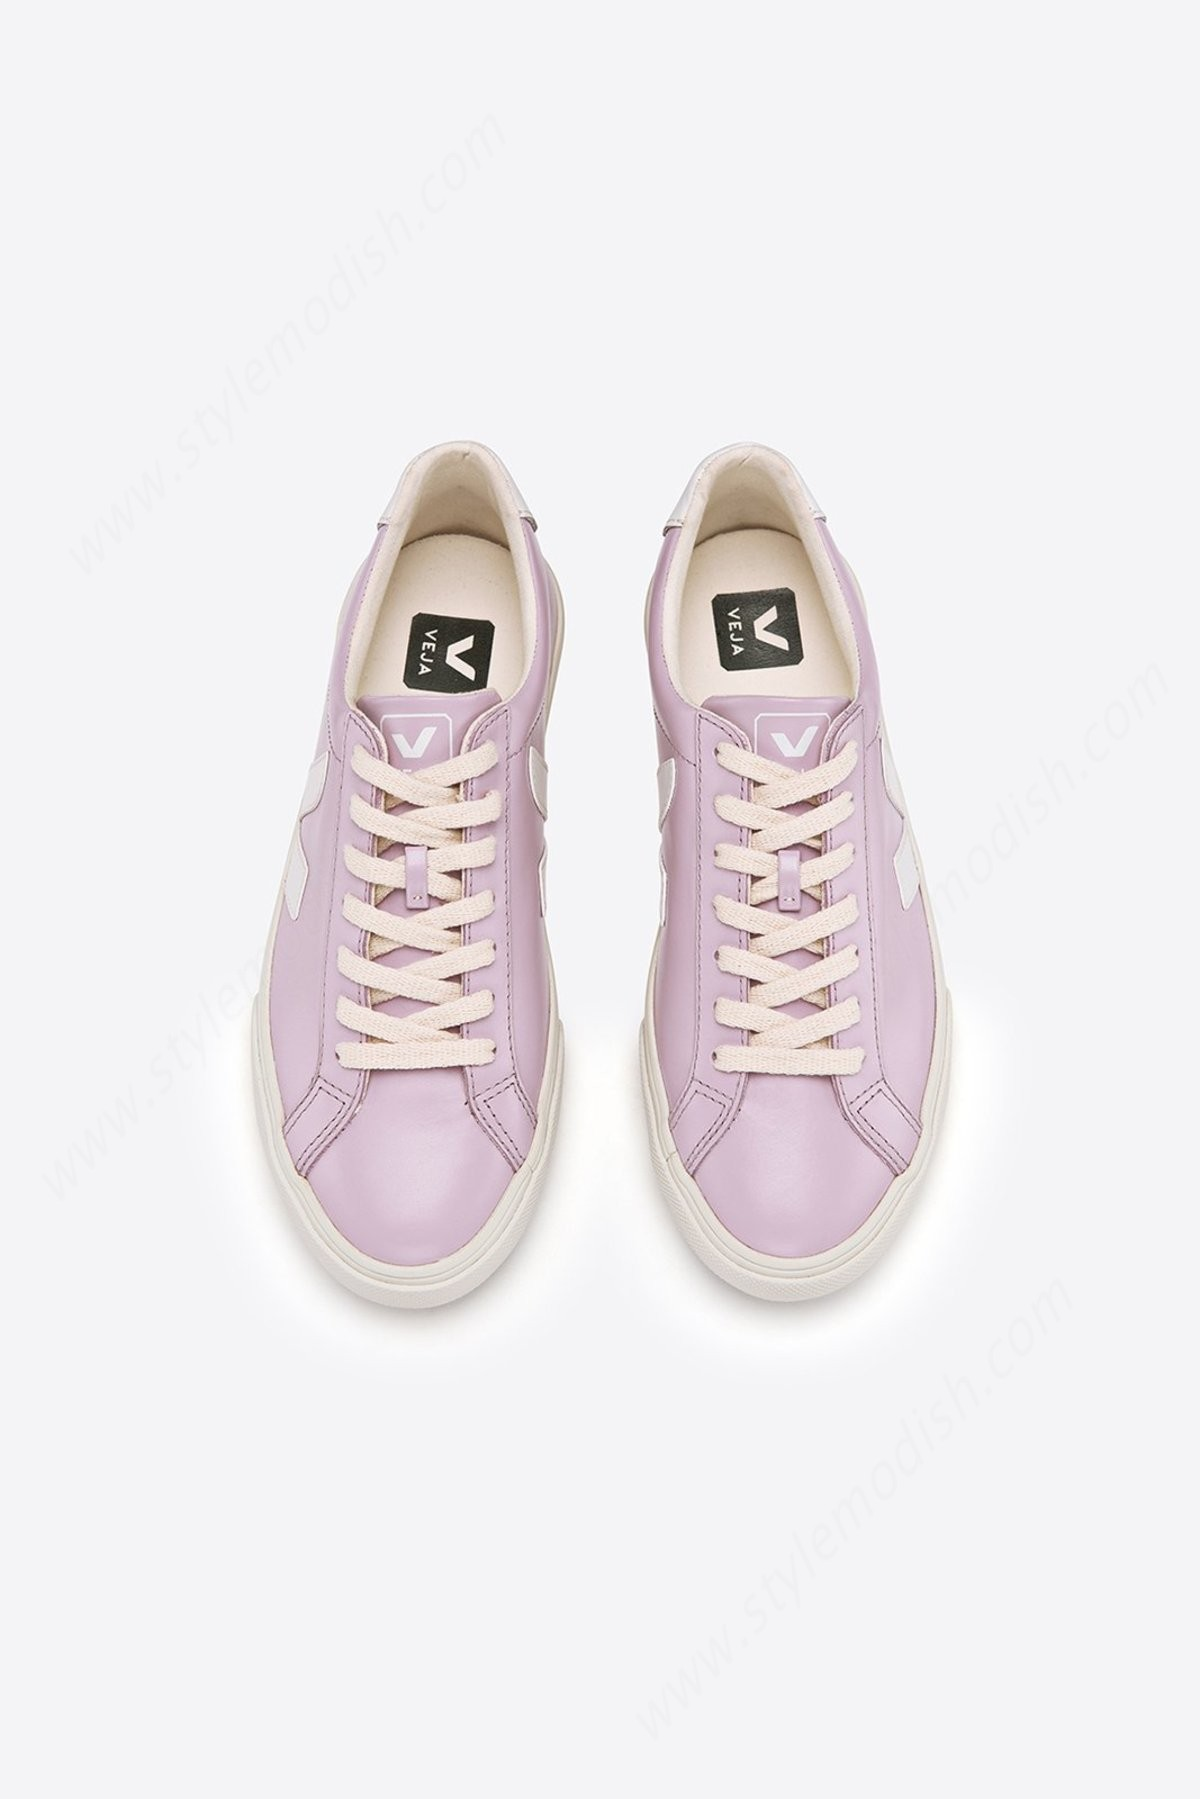 Women's Veja Esplar Leather Lilas - Lilac Sneakers - -2